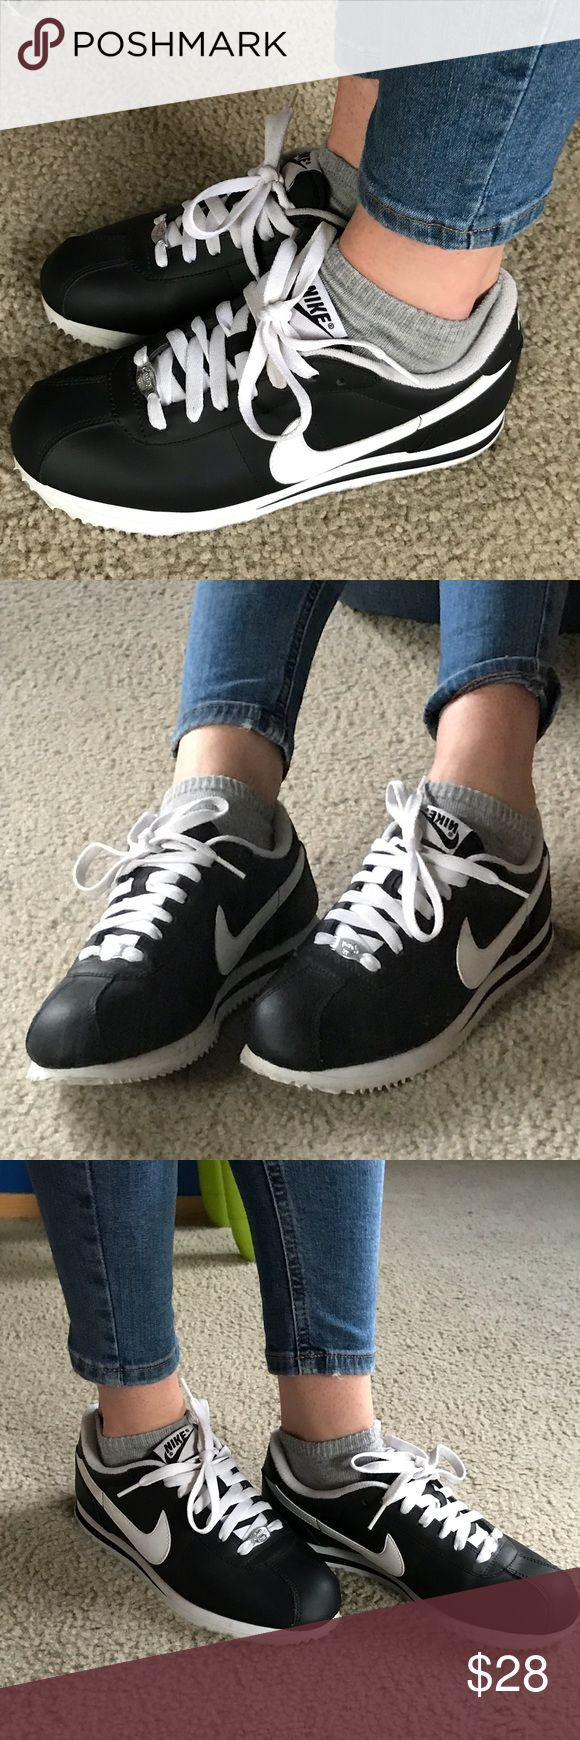 Black Leather Nike Cortez Shoes Only worn a handful of times, very comfortable. Looks nearly new  True to size Nike Shoes Sneakers